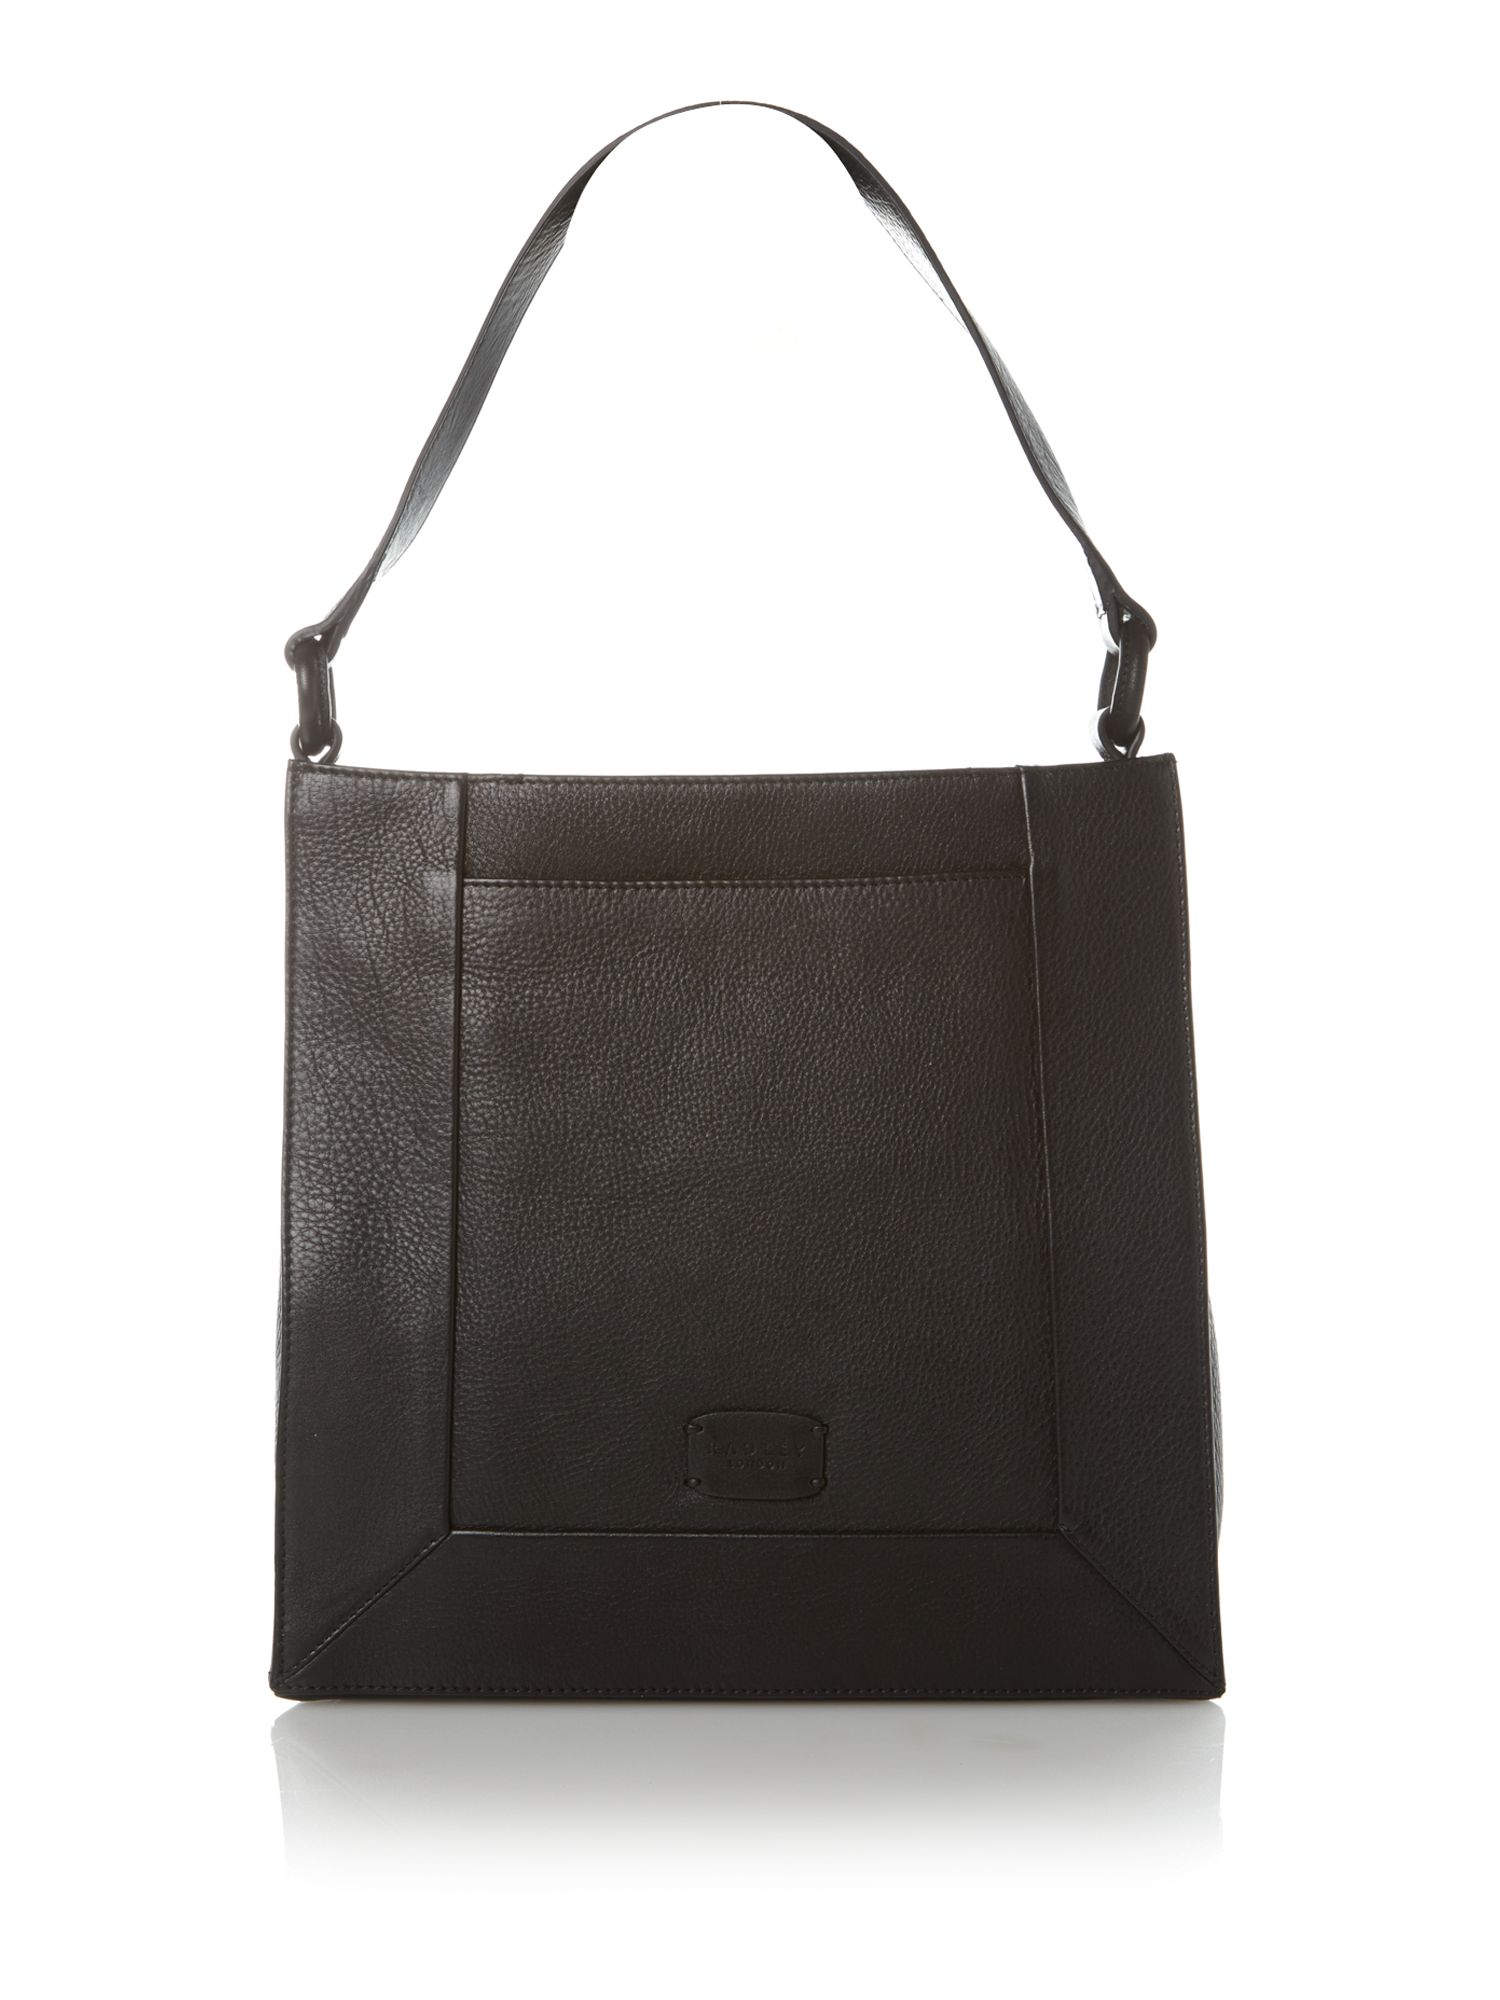 Border medium shoulder bag